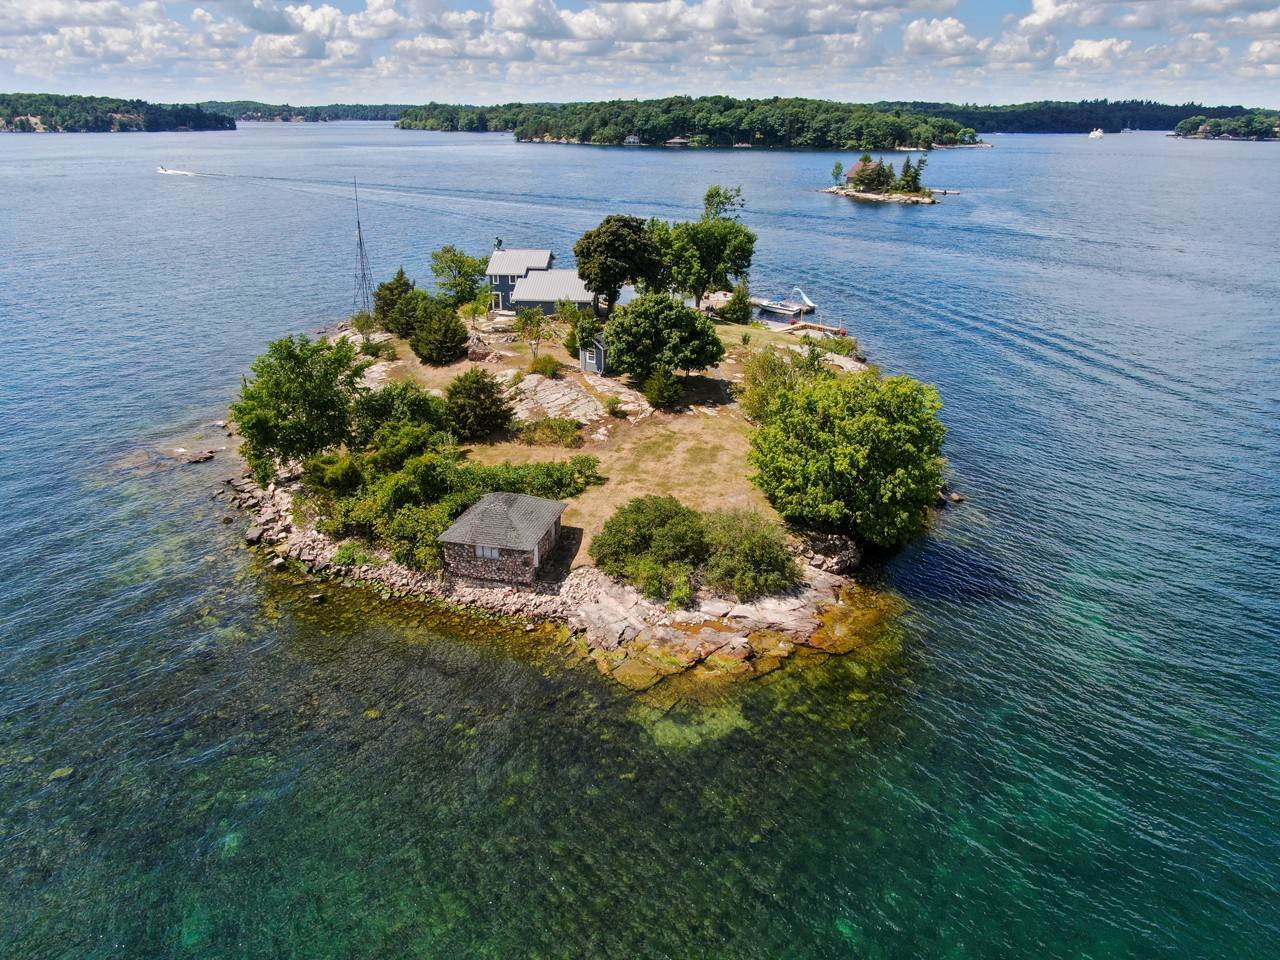 Private Islands vì Bán tại Woronoco Island in the 1000 Islands 41884 Woronoco Island Clayton, New York 13624 Hoa Kỳ